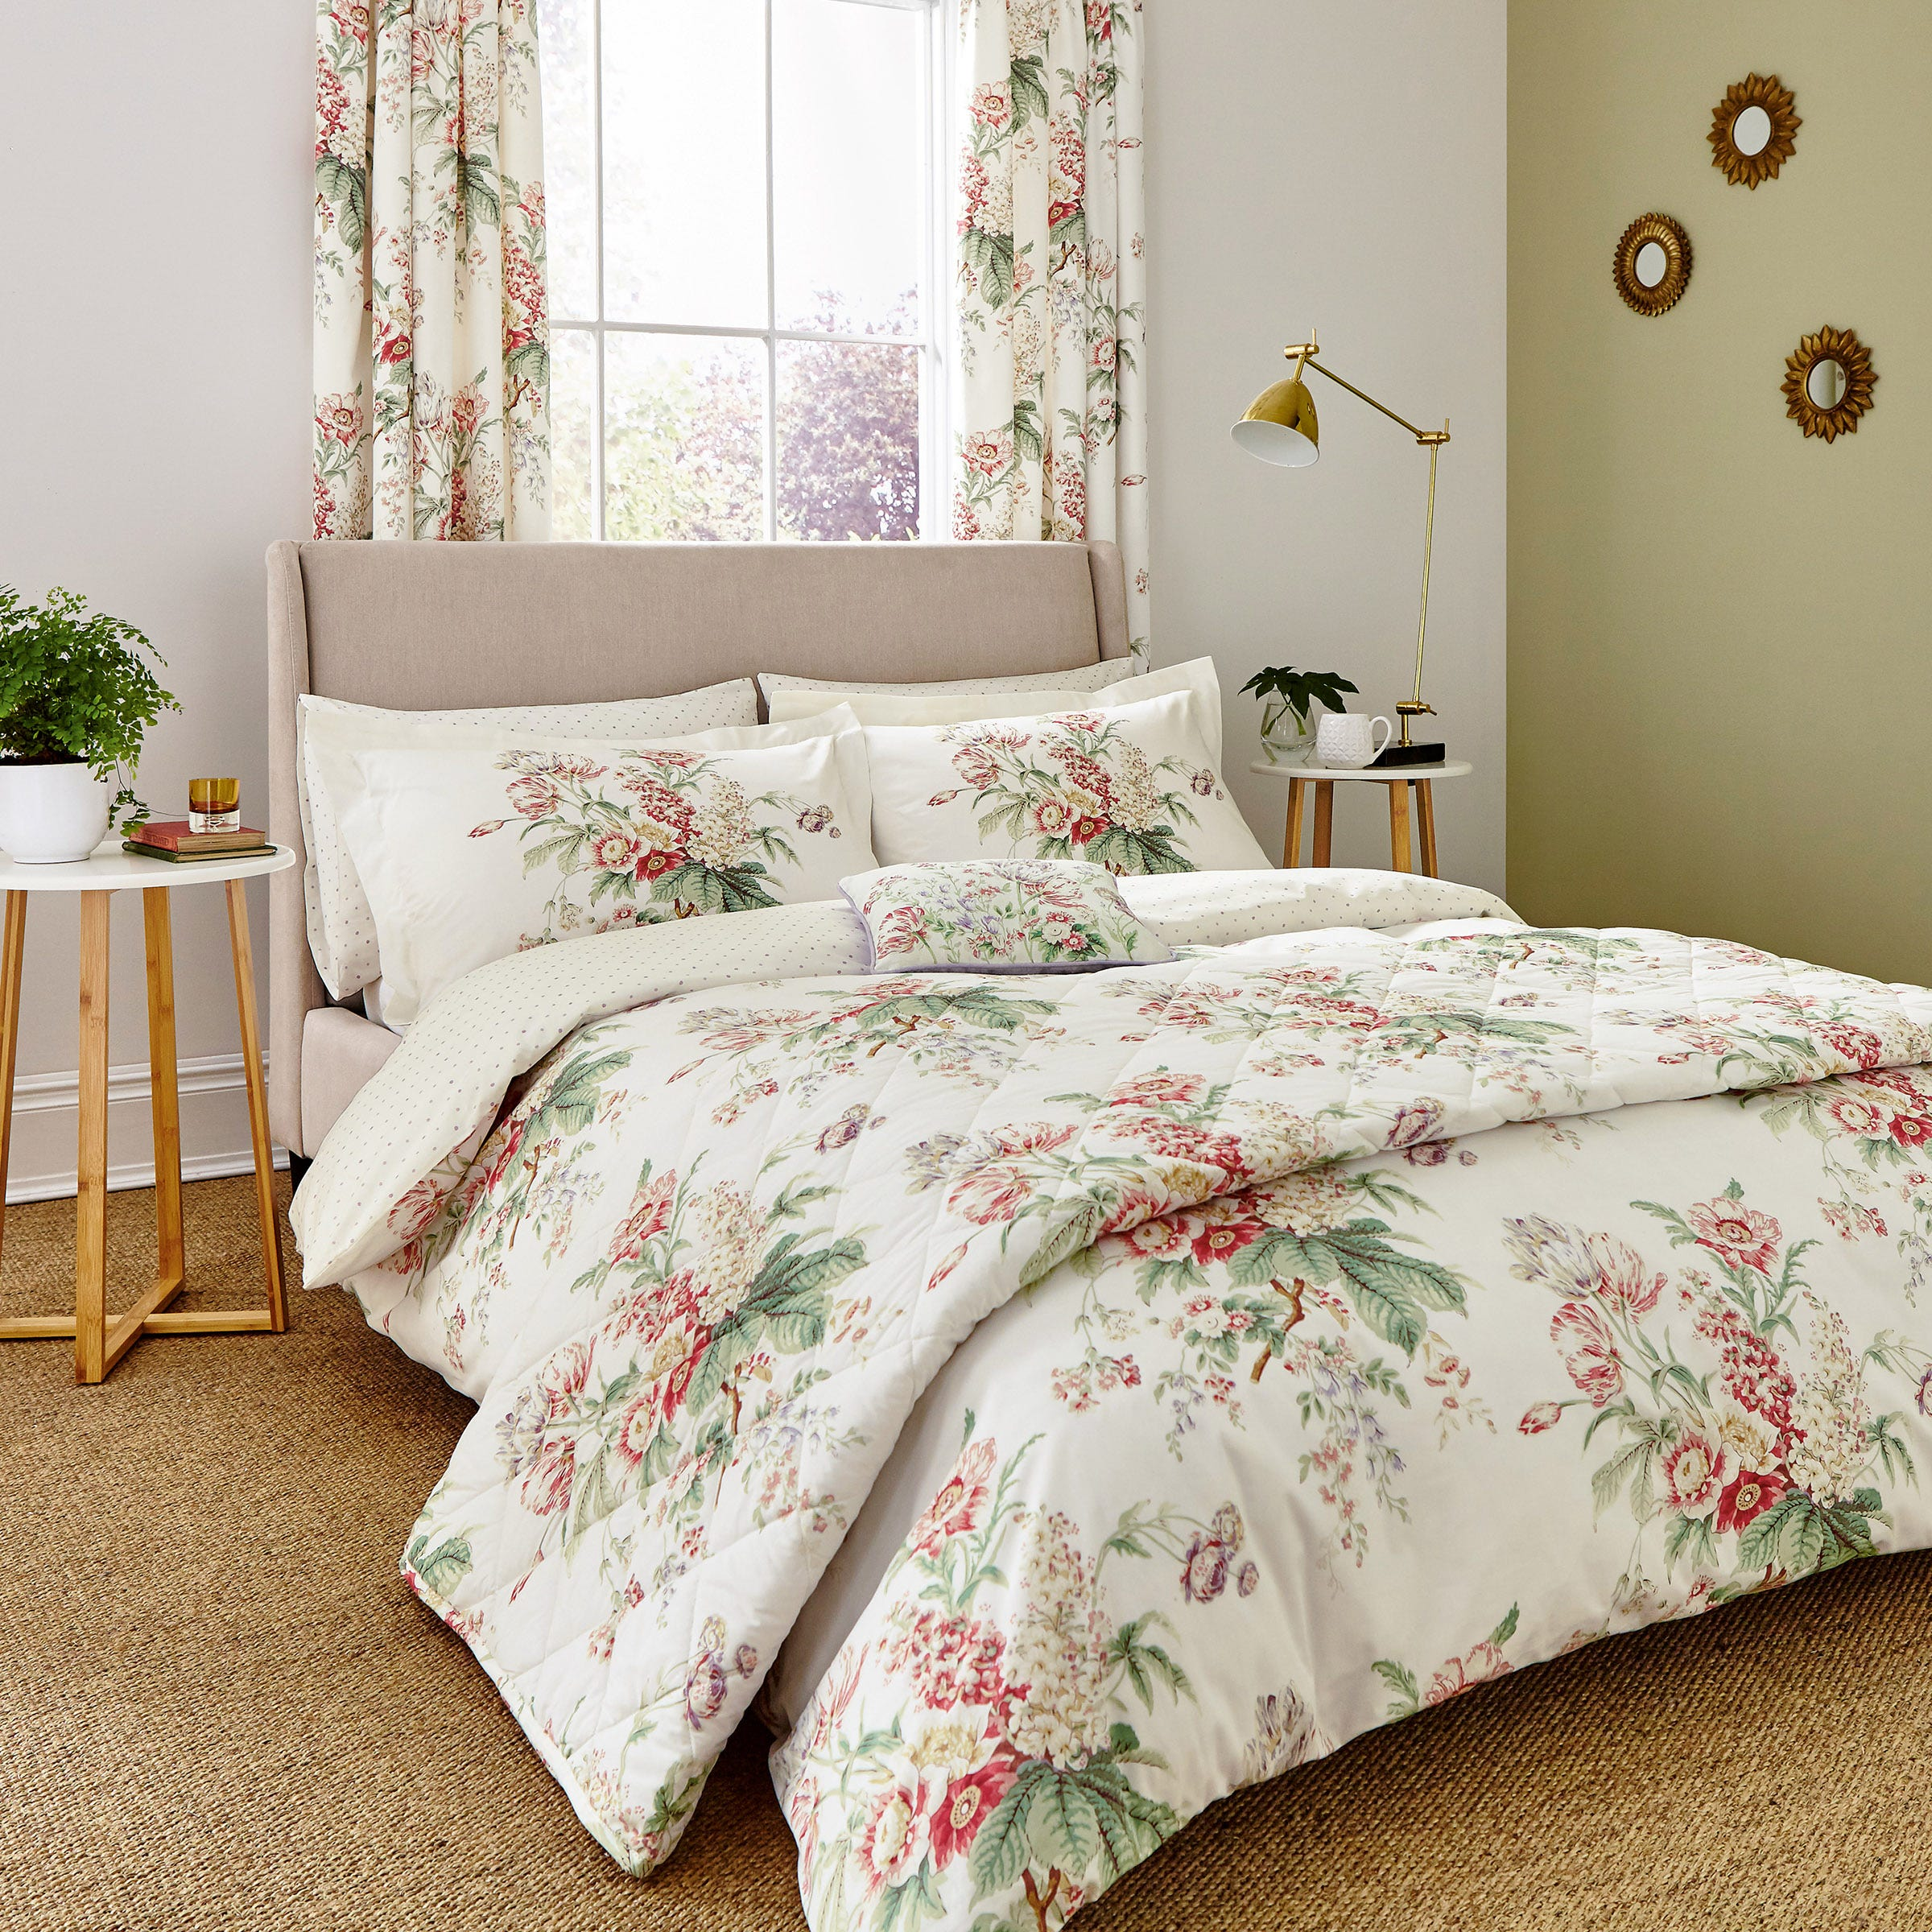 Sanderson Bedding Tournier Double Duvet Cover Strawberry